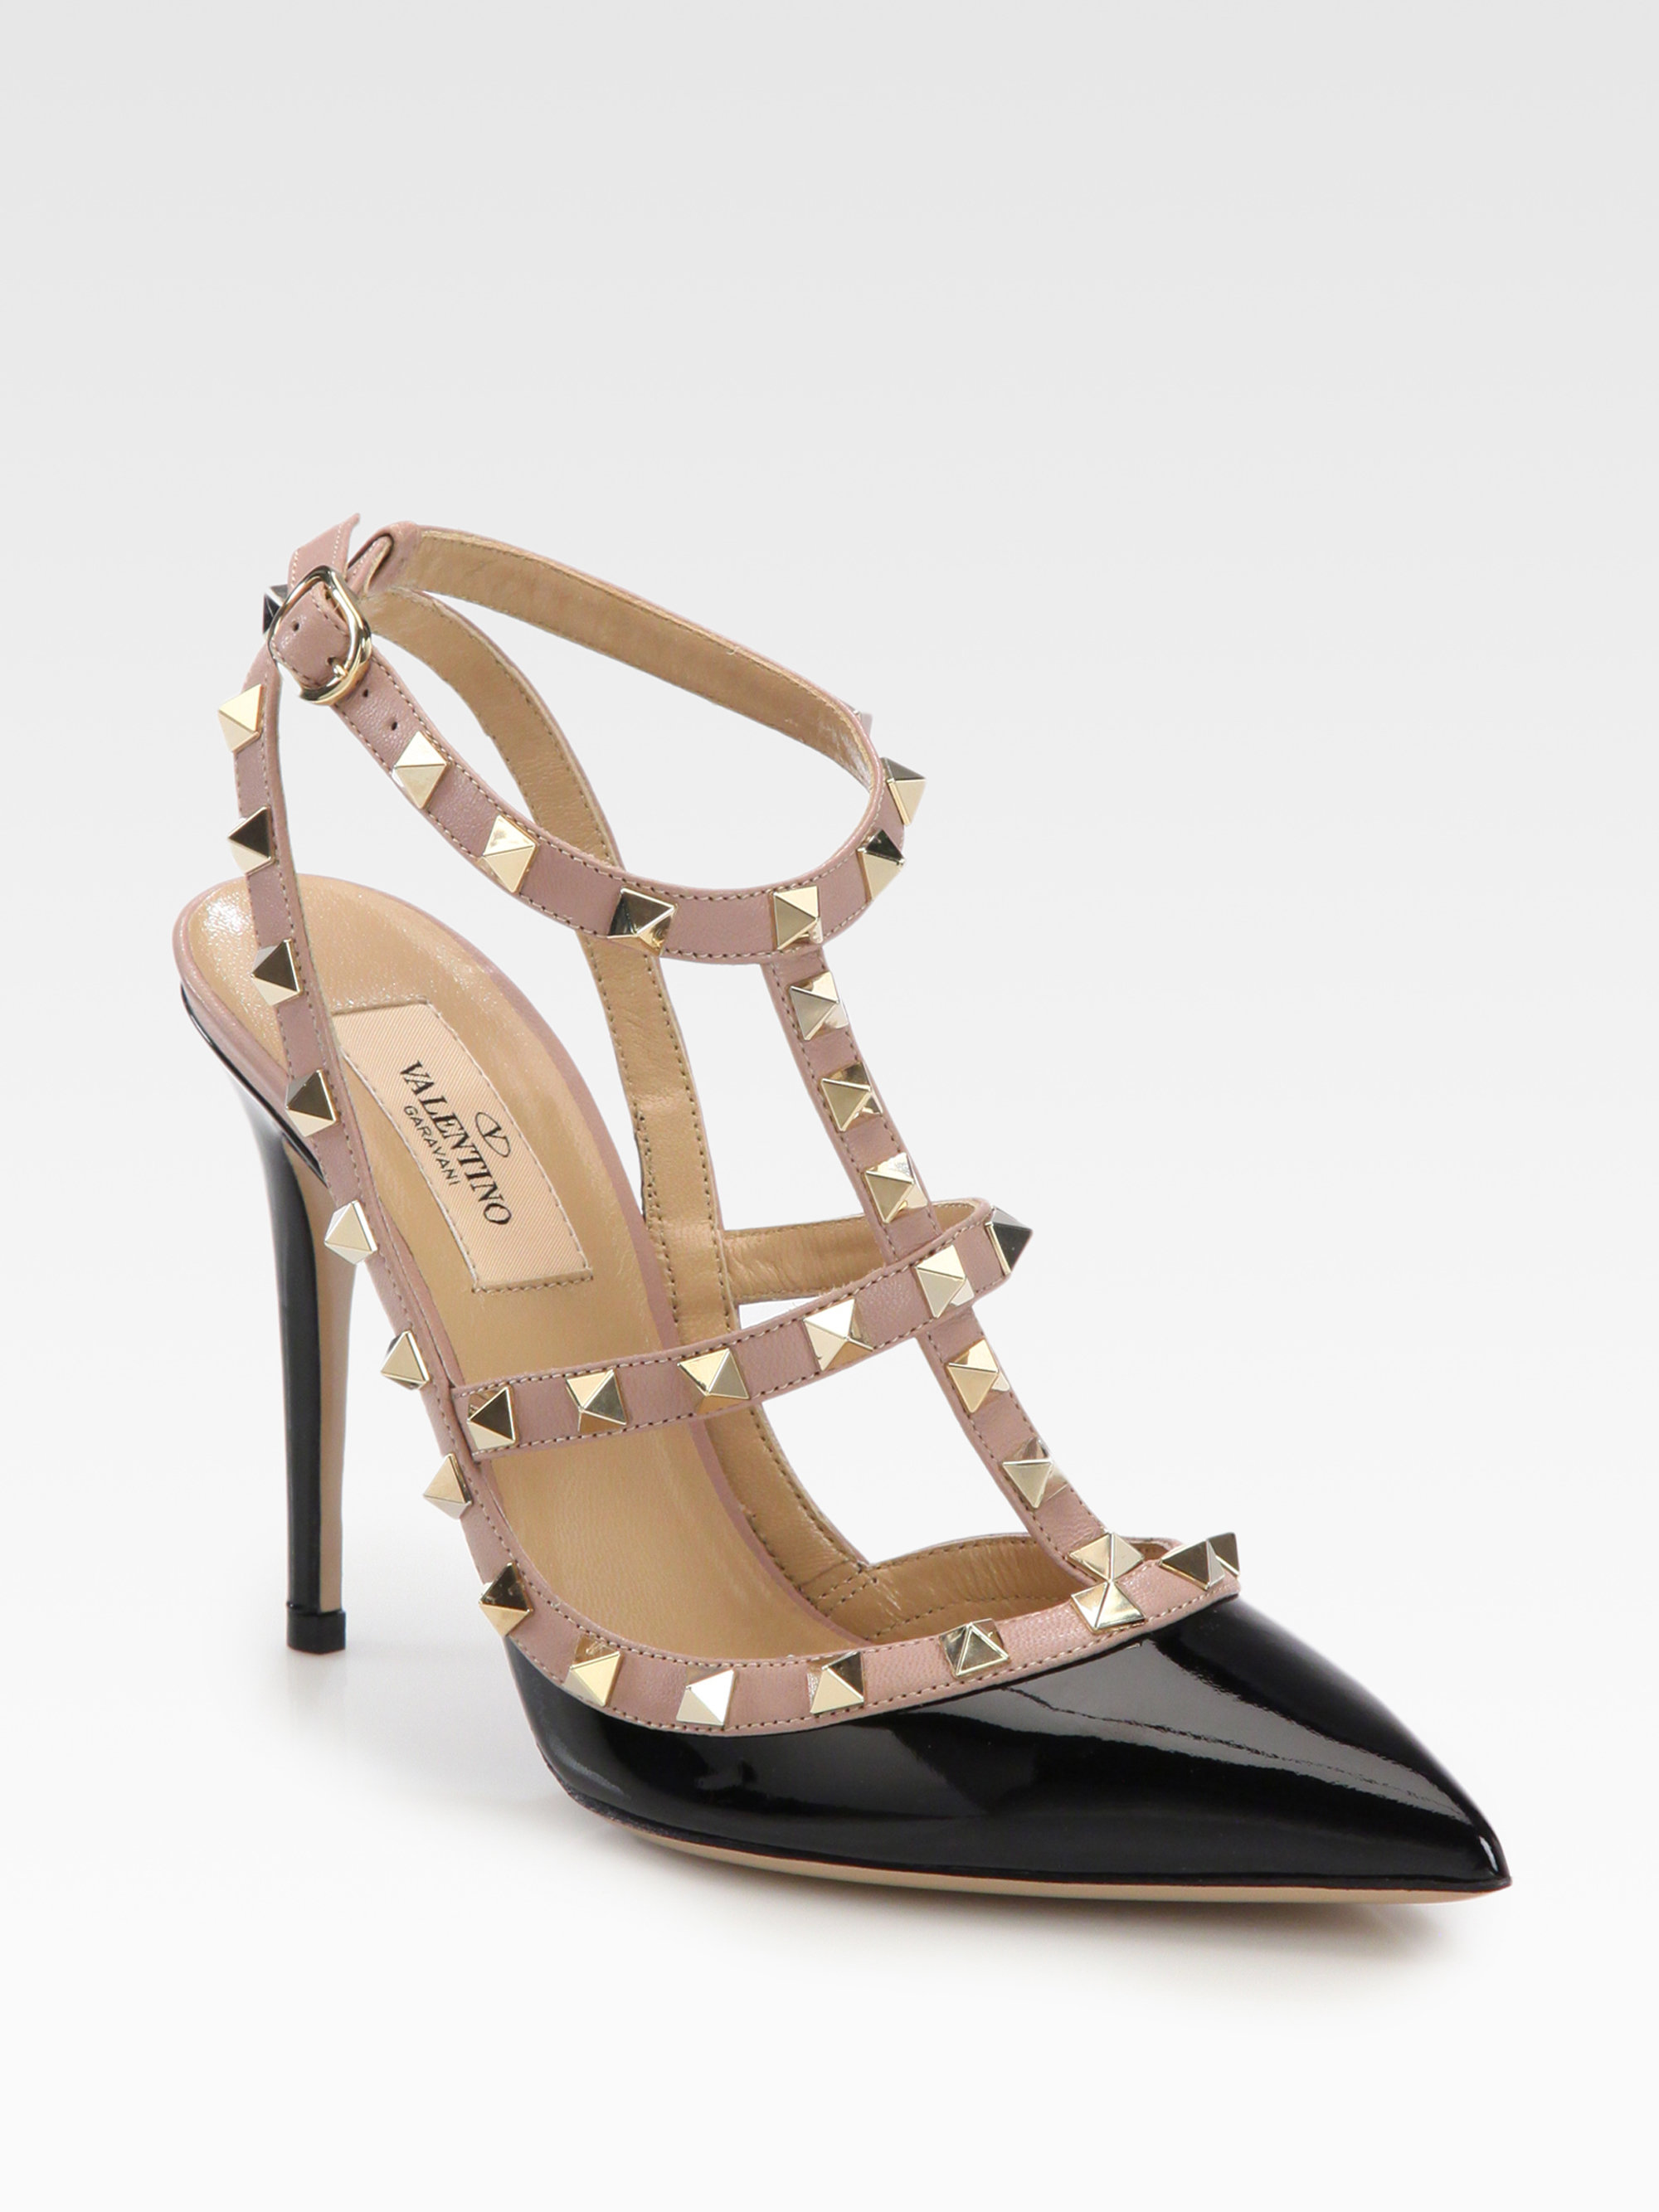 valentino patent leather rockstud slingback pumps in black lyst. Black Bedroom Furniture Sets. Home Design Ideas